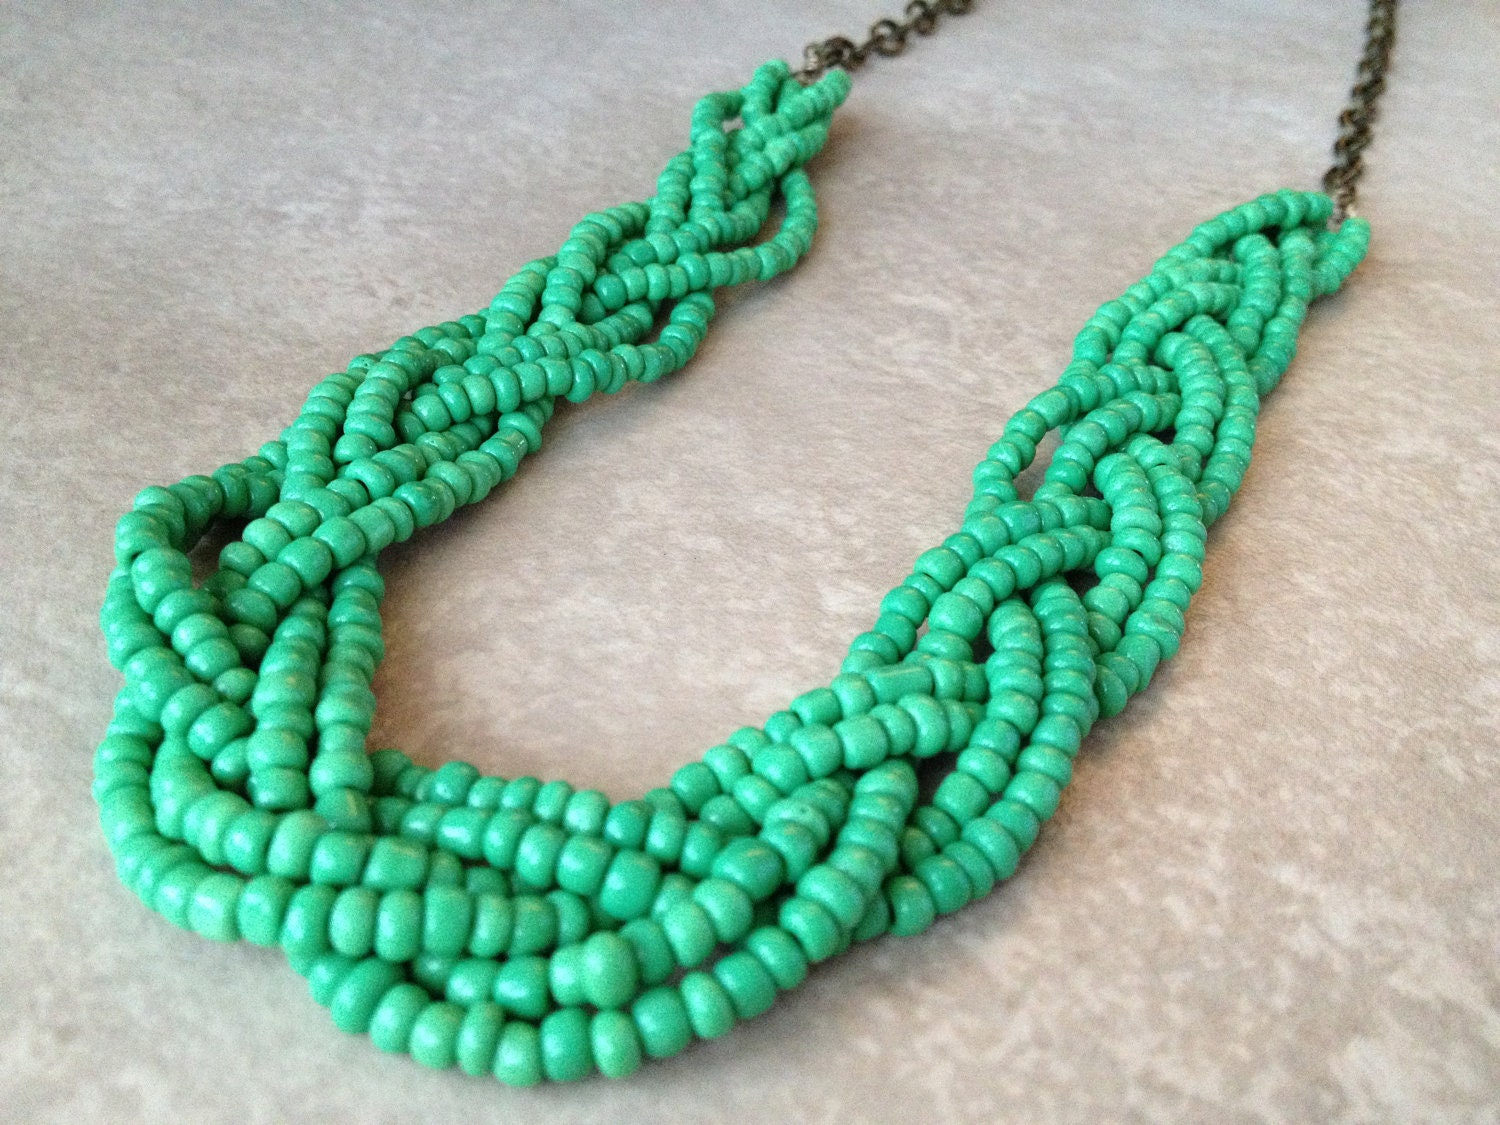 Long Beaded Necklace Braided Seed Bead Necklace Statement